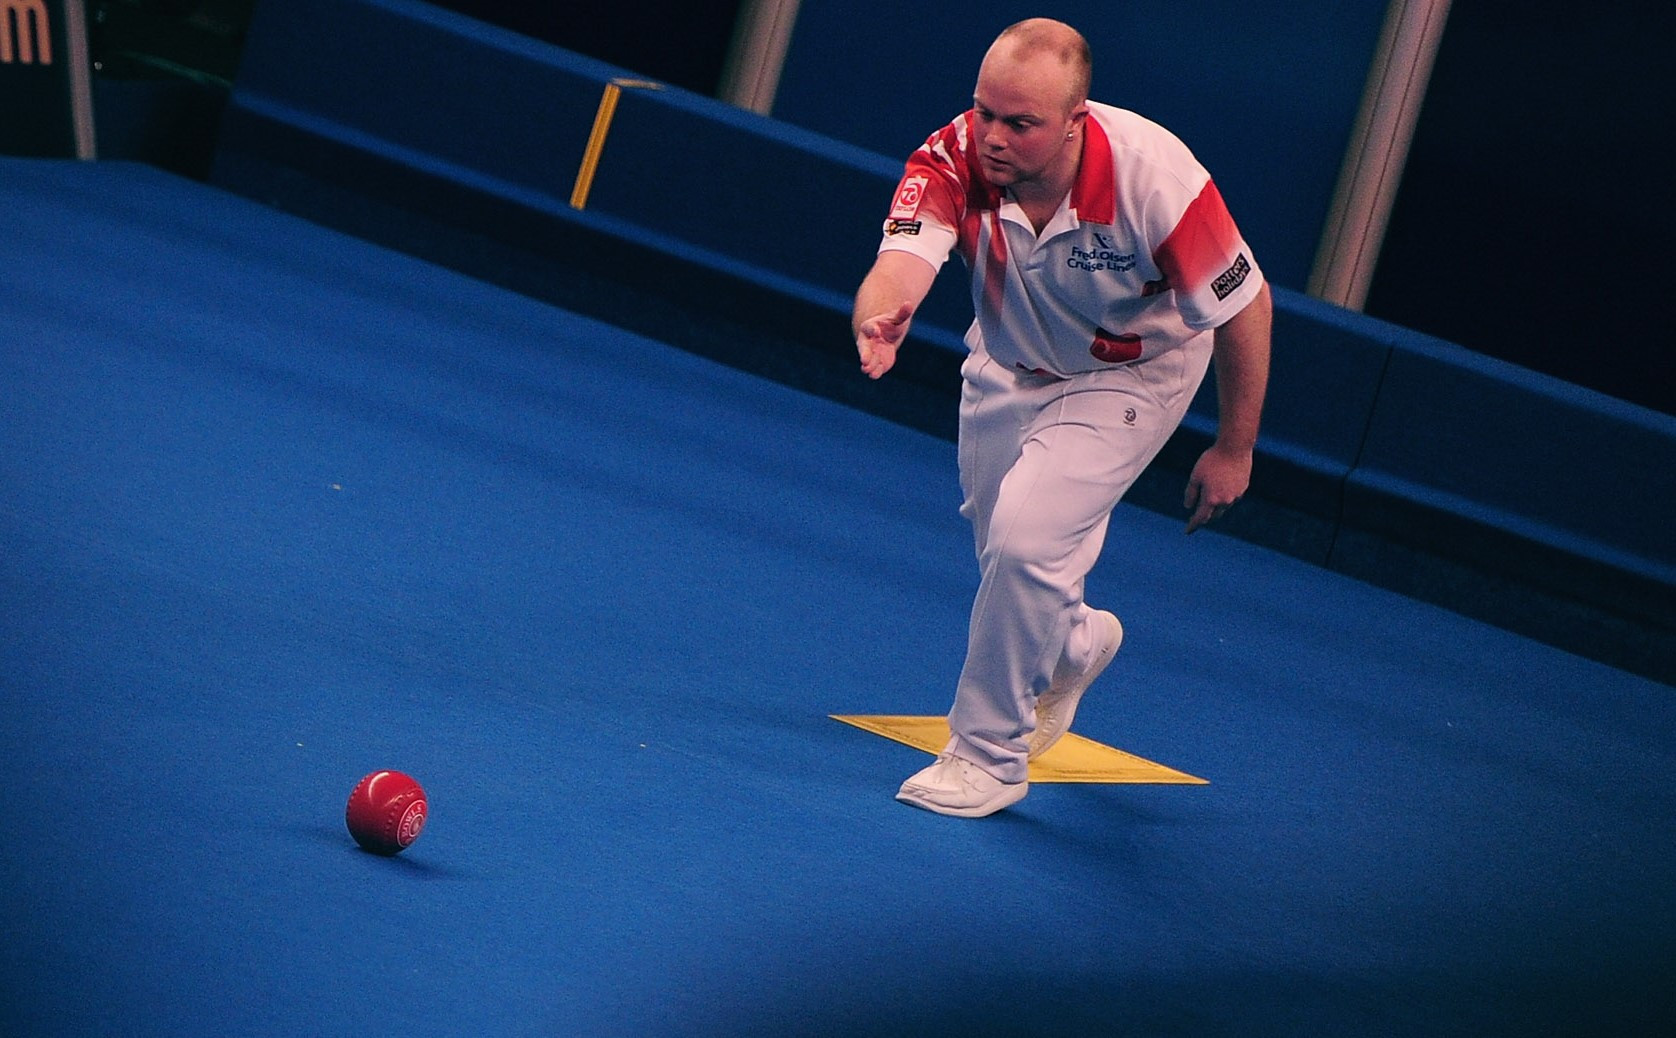 Wins for ex-champions Anderson and Foster at World Indoor Bowls Championships